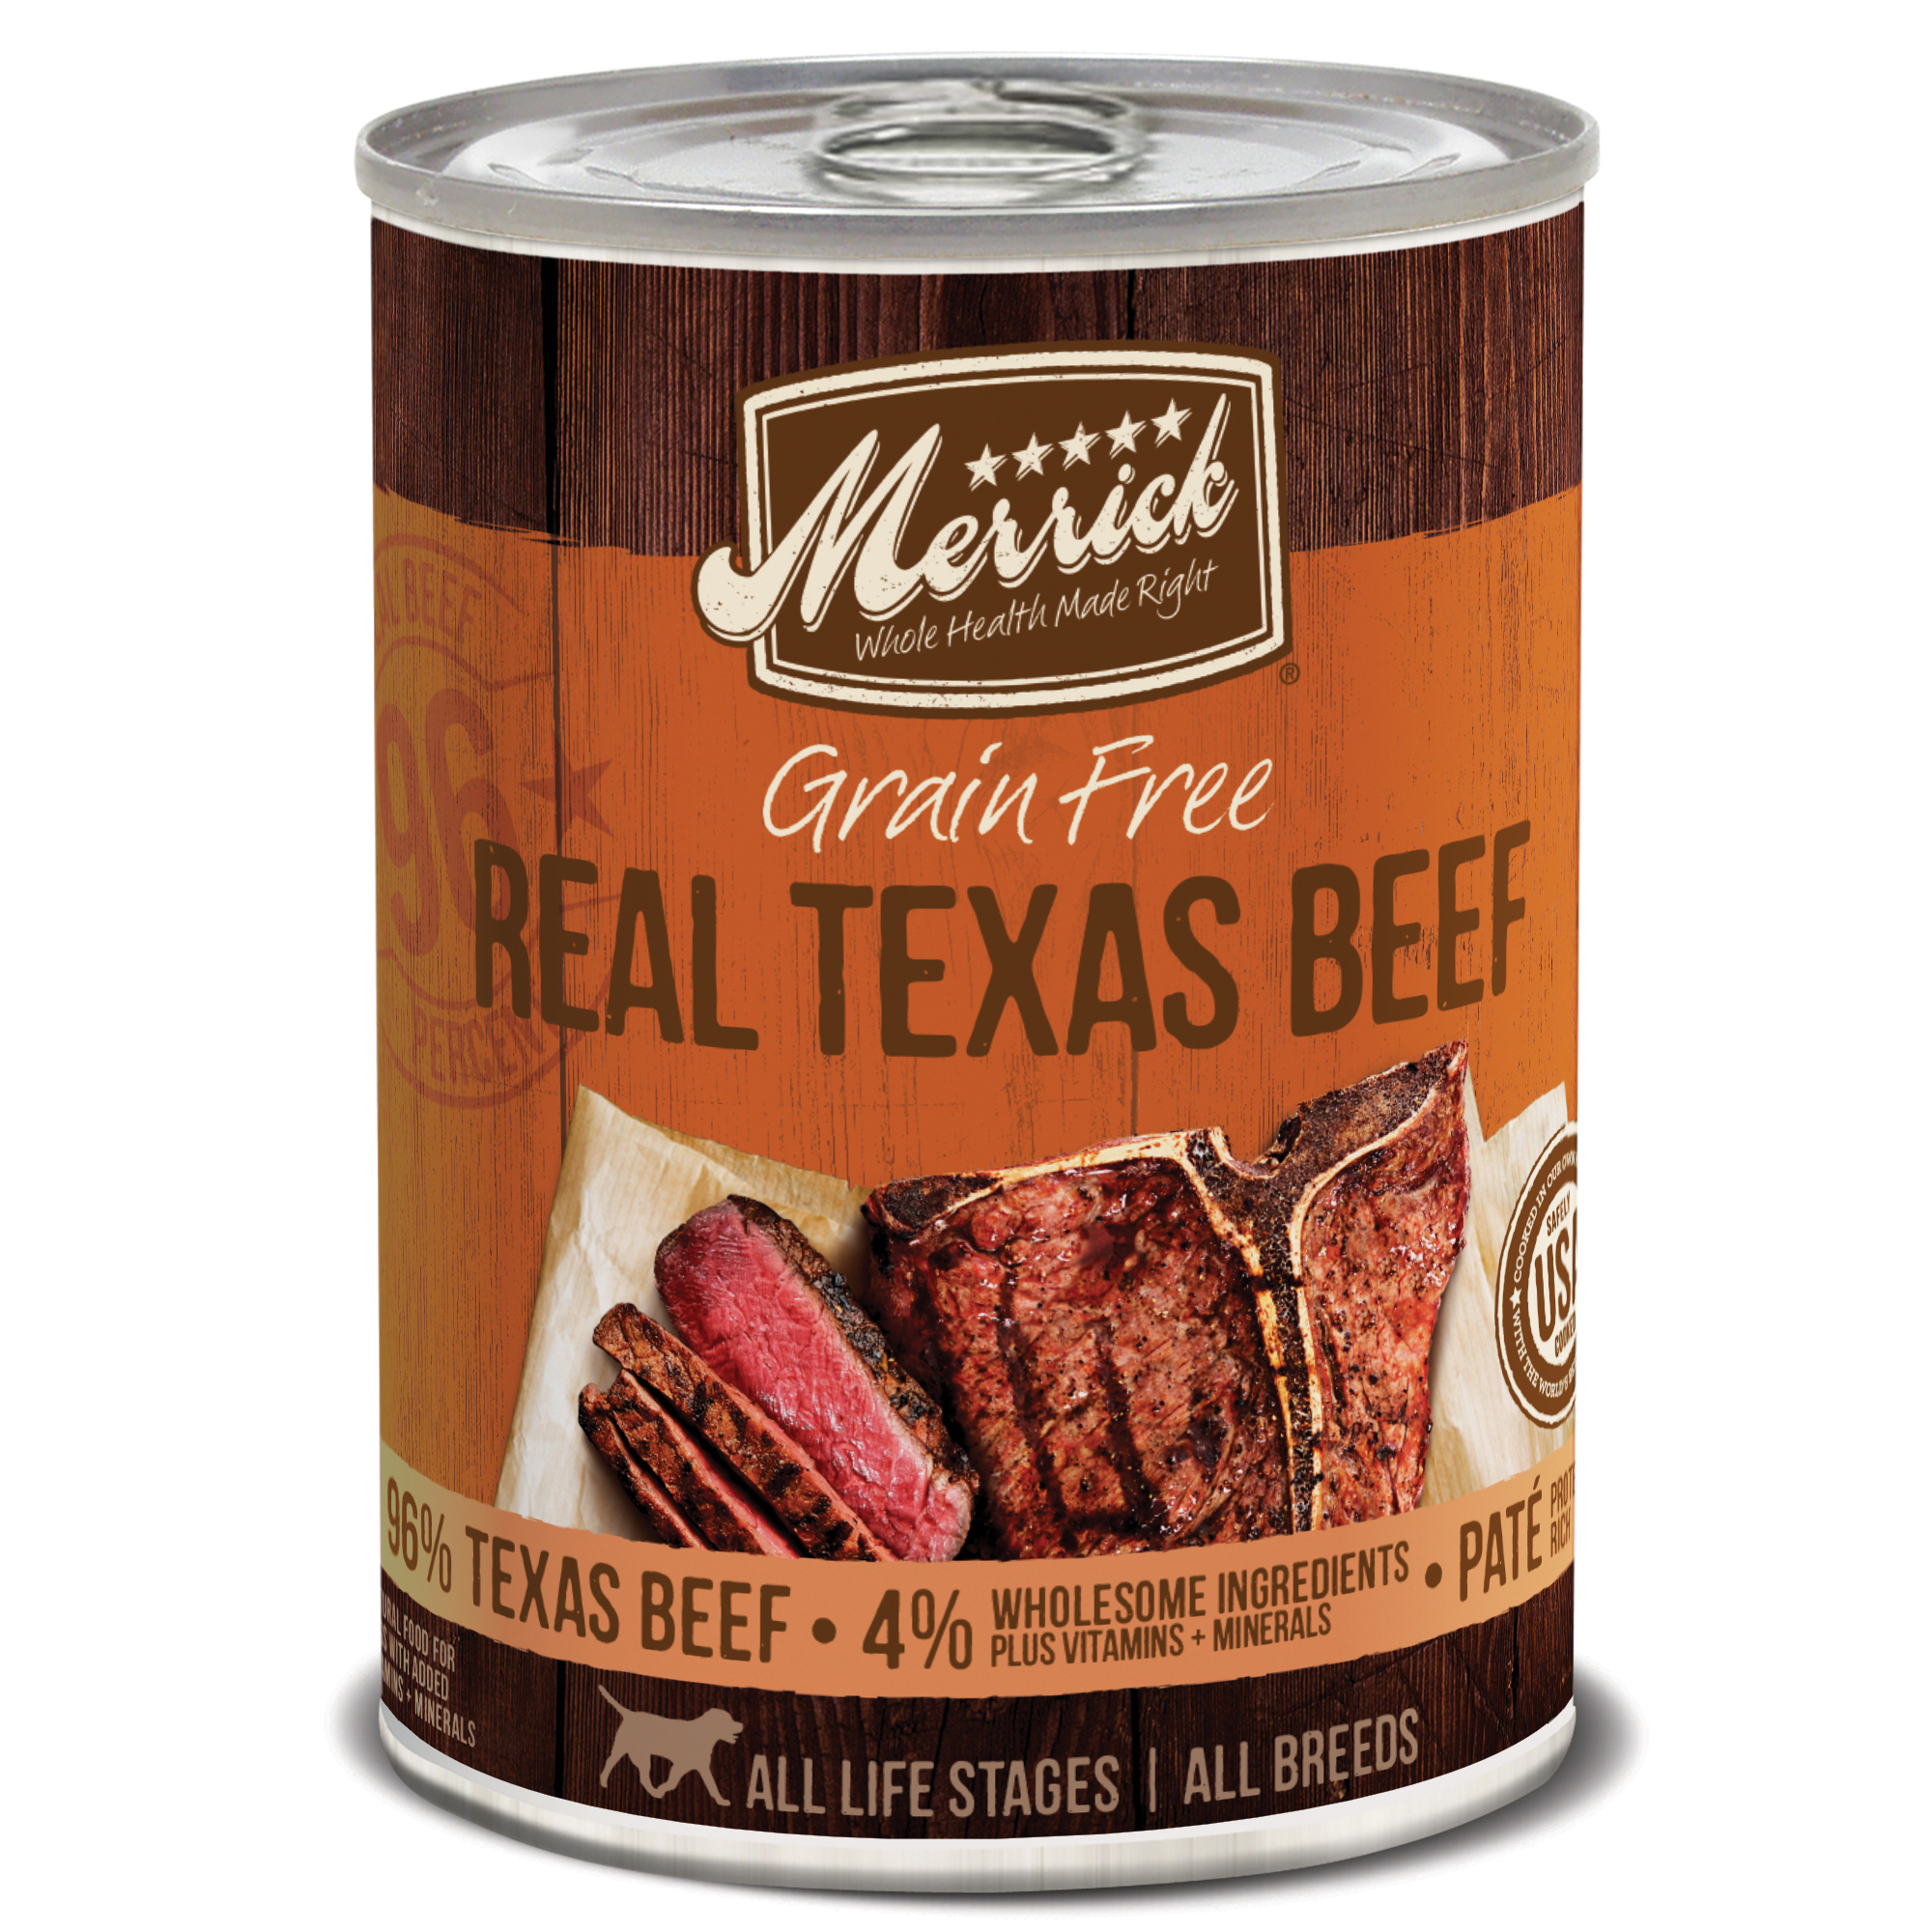 Merrick Grain-Free Real Texas Beef Canned Dog Food Image